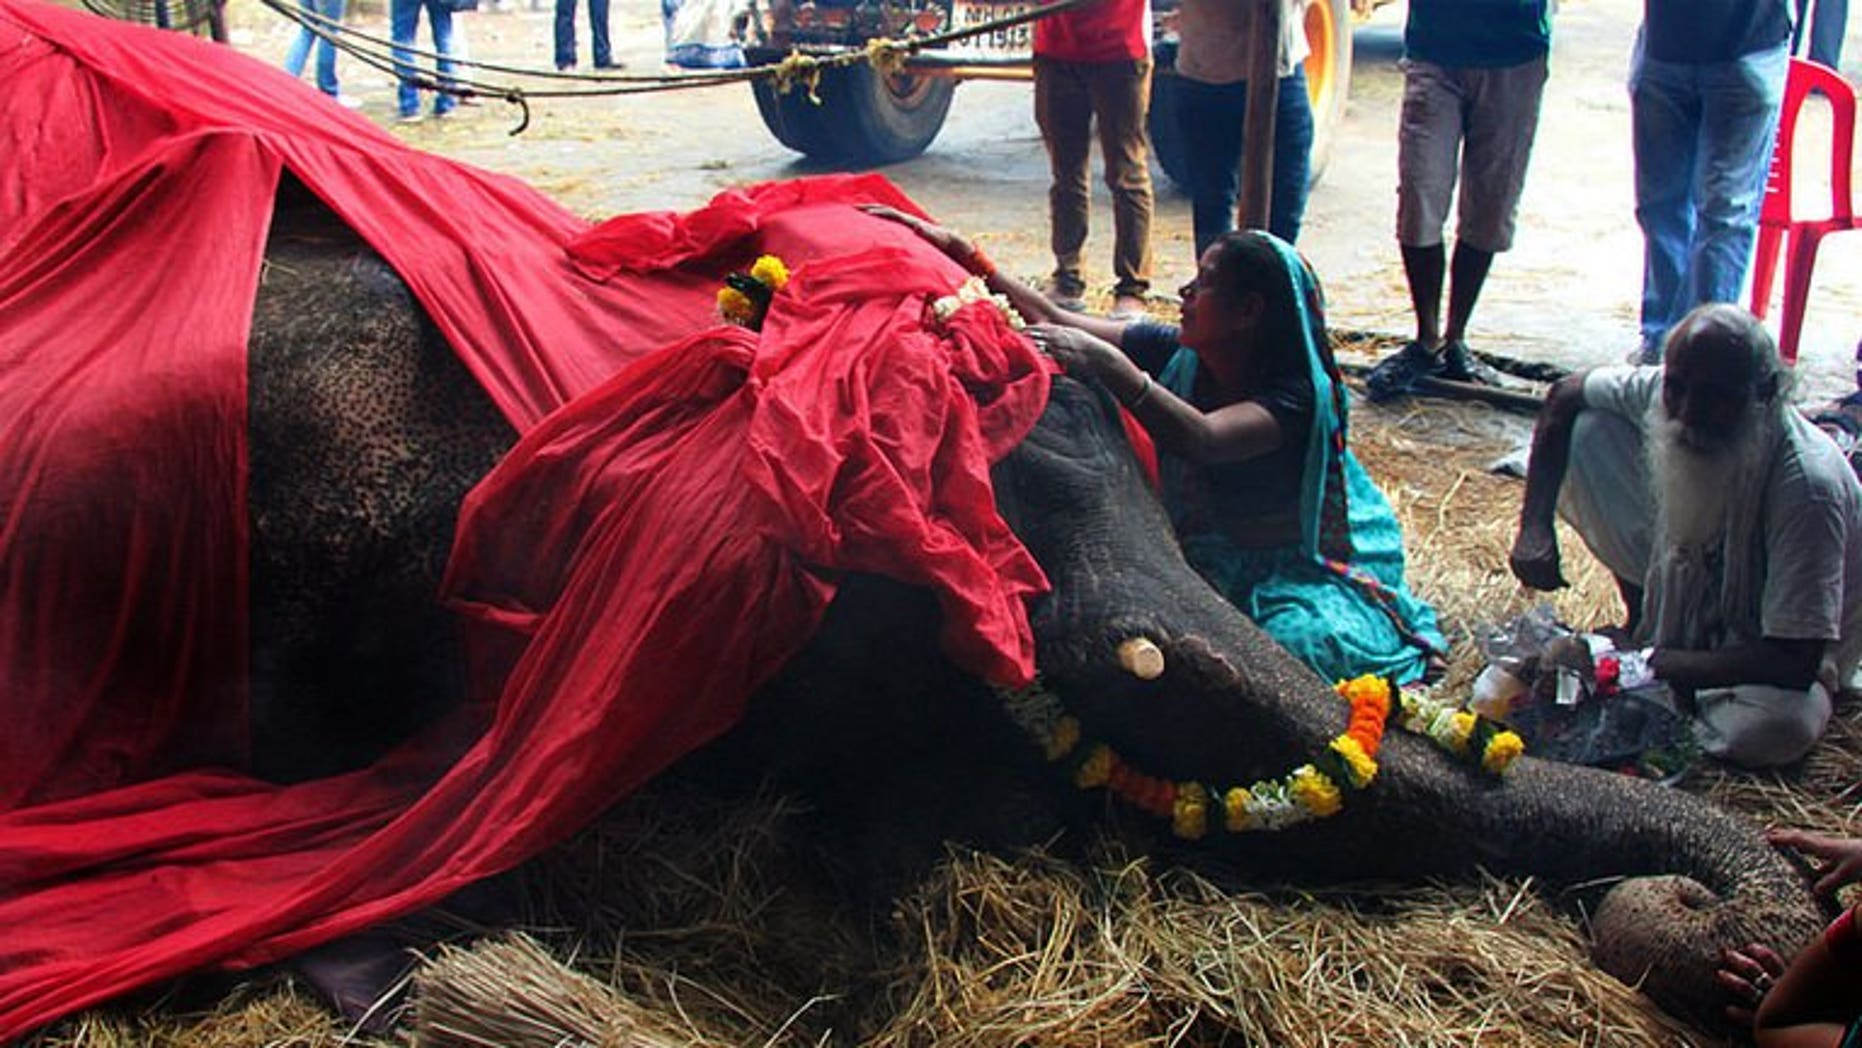 A woman mourns alongside the body of Bijlee, an elephant who died aged 58, in Mumbai, on June 30, 2013. Bijlee's plight illustrated the mistreatment of the animals as street performers.